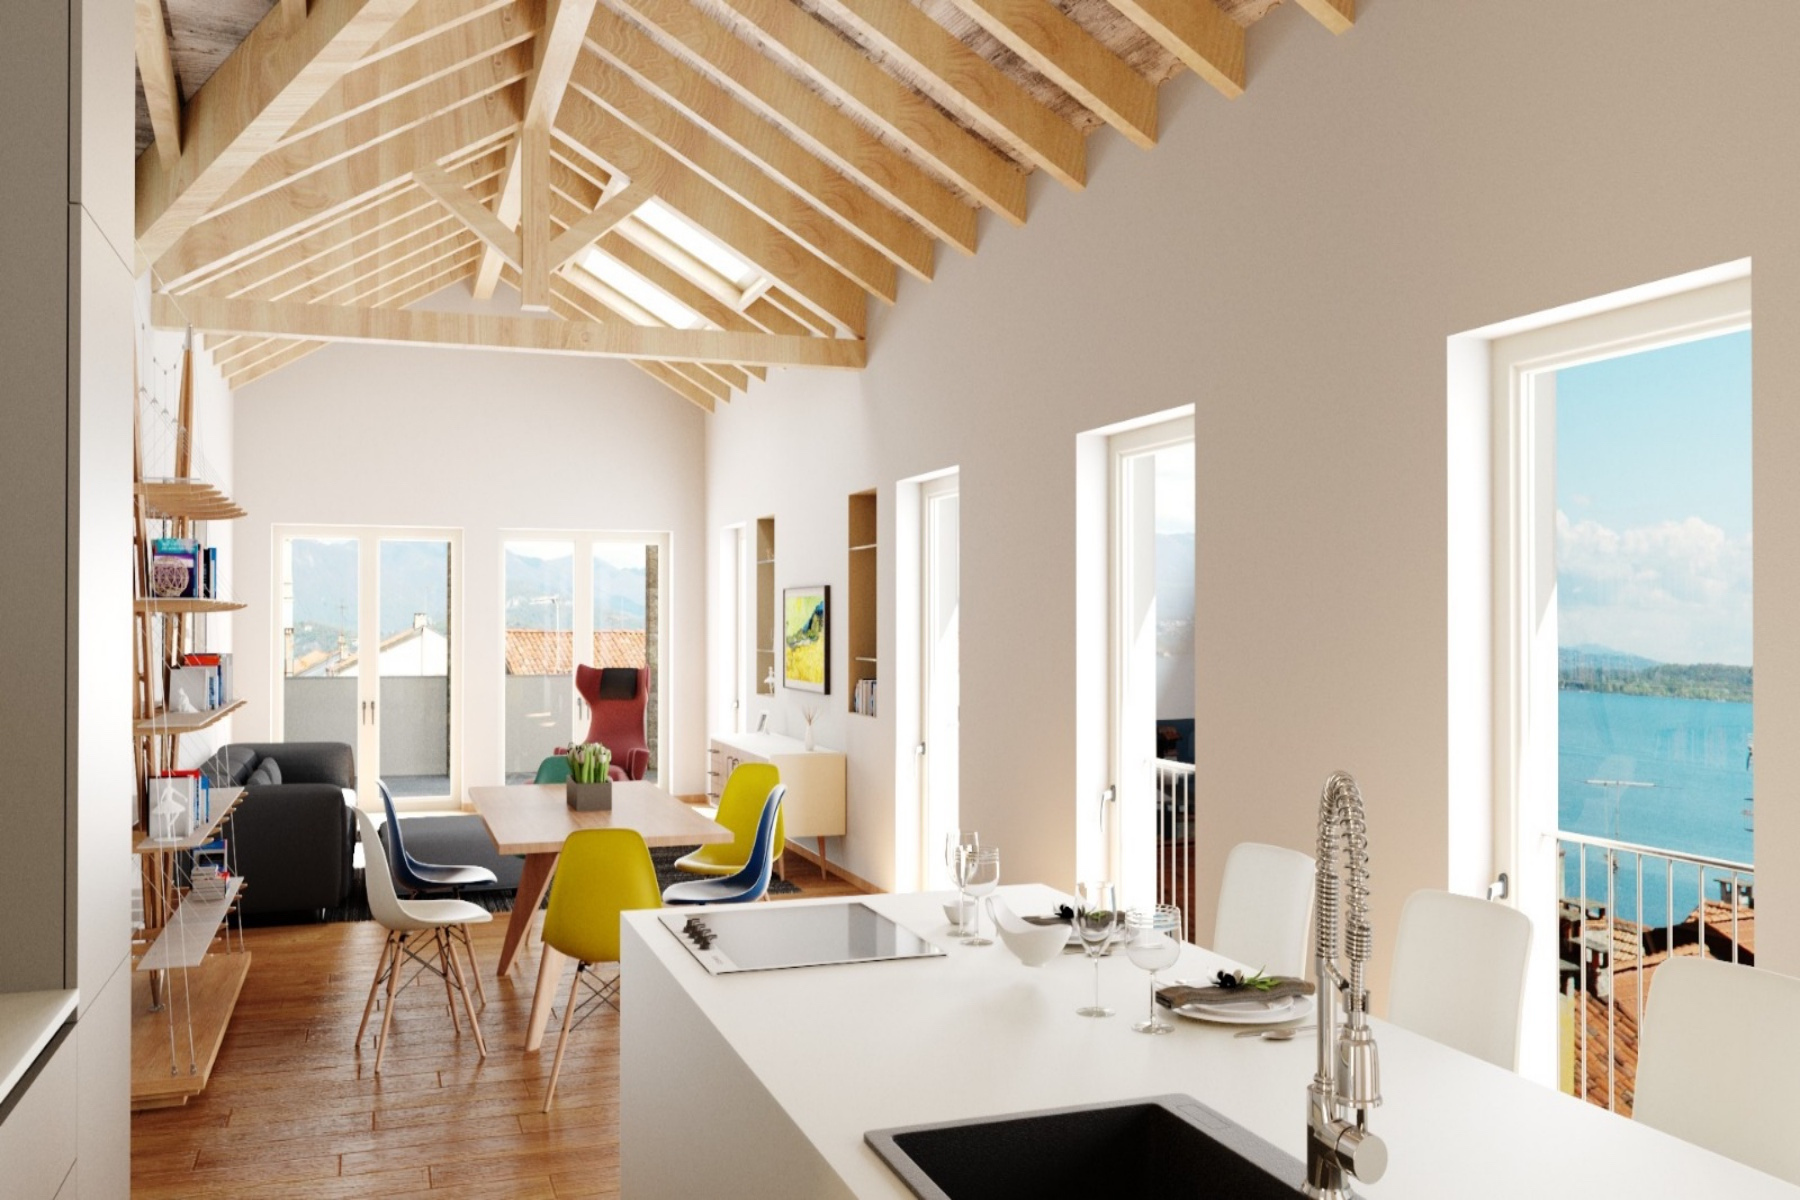 Apartments for Sale at Penthouse in the heart of Belgirate Belgirate, Verbano Cusio Ossola Italy